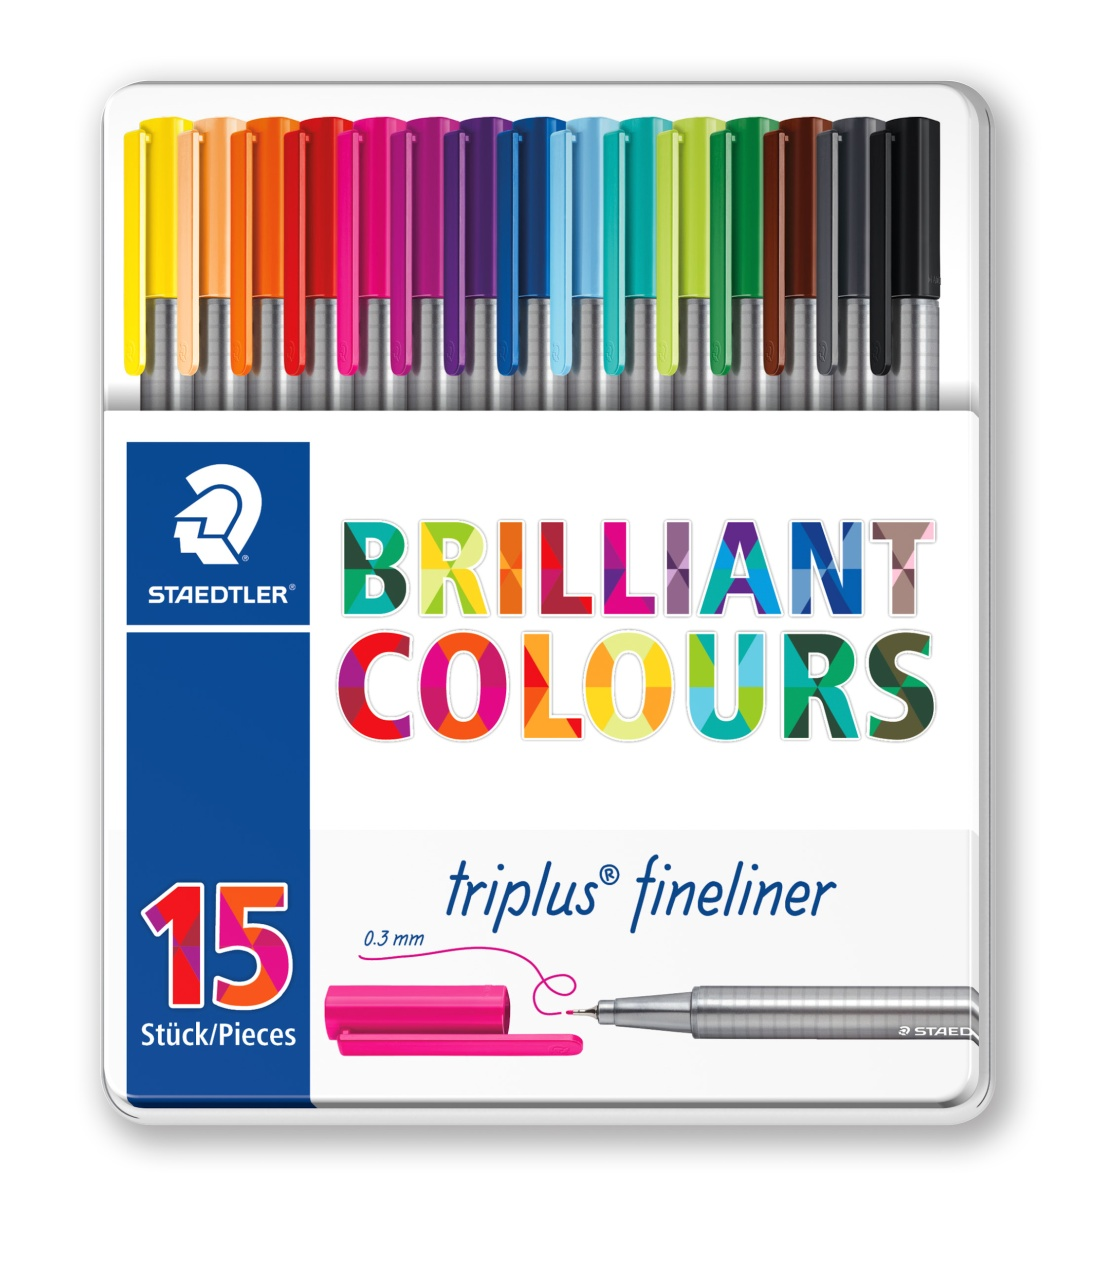 Staedtler Fineliner triplus Brilliant Colours 15 Stück